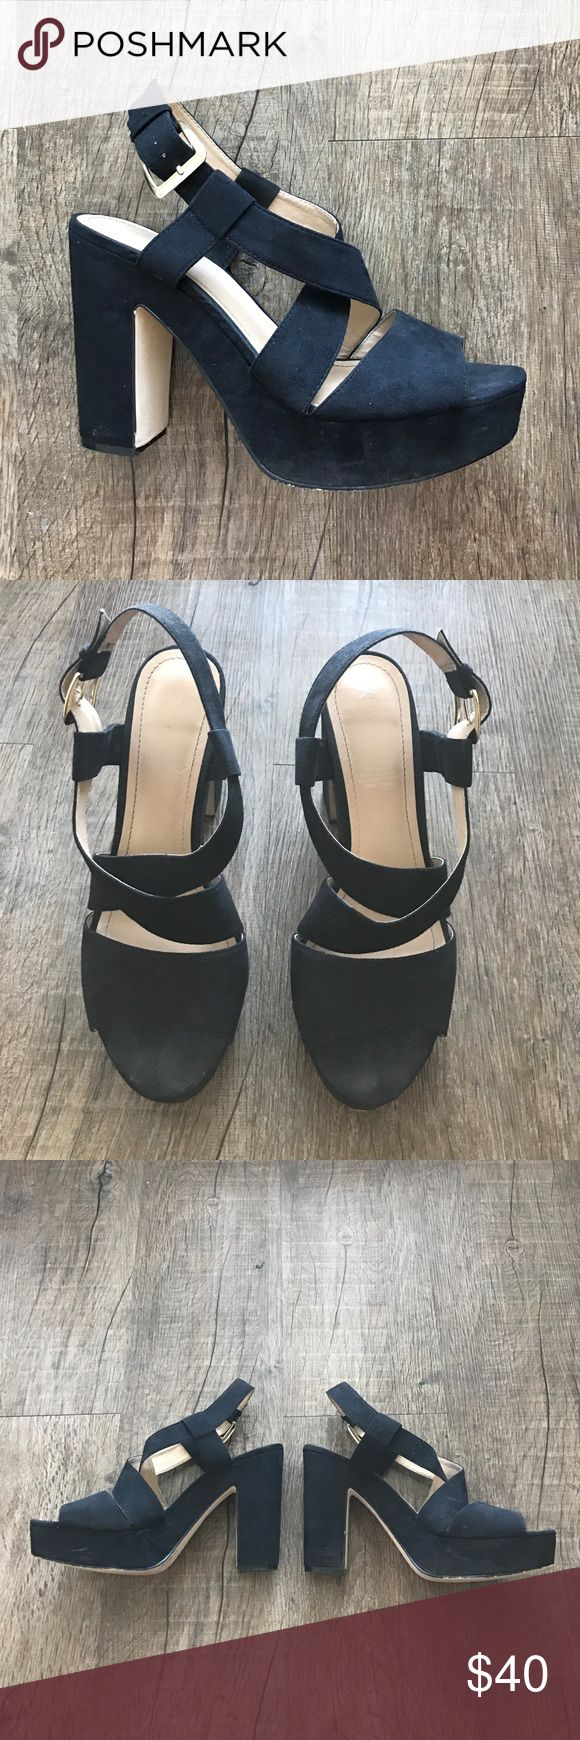 "H&M Black Platform Sandals Pre-Loved and good condition. 5"" heel, faux suede. Normal wear. No tears! H&M Shoes"